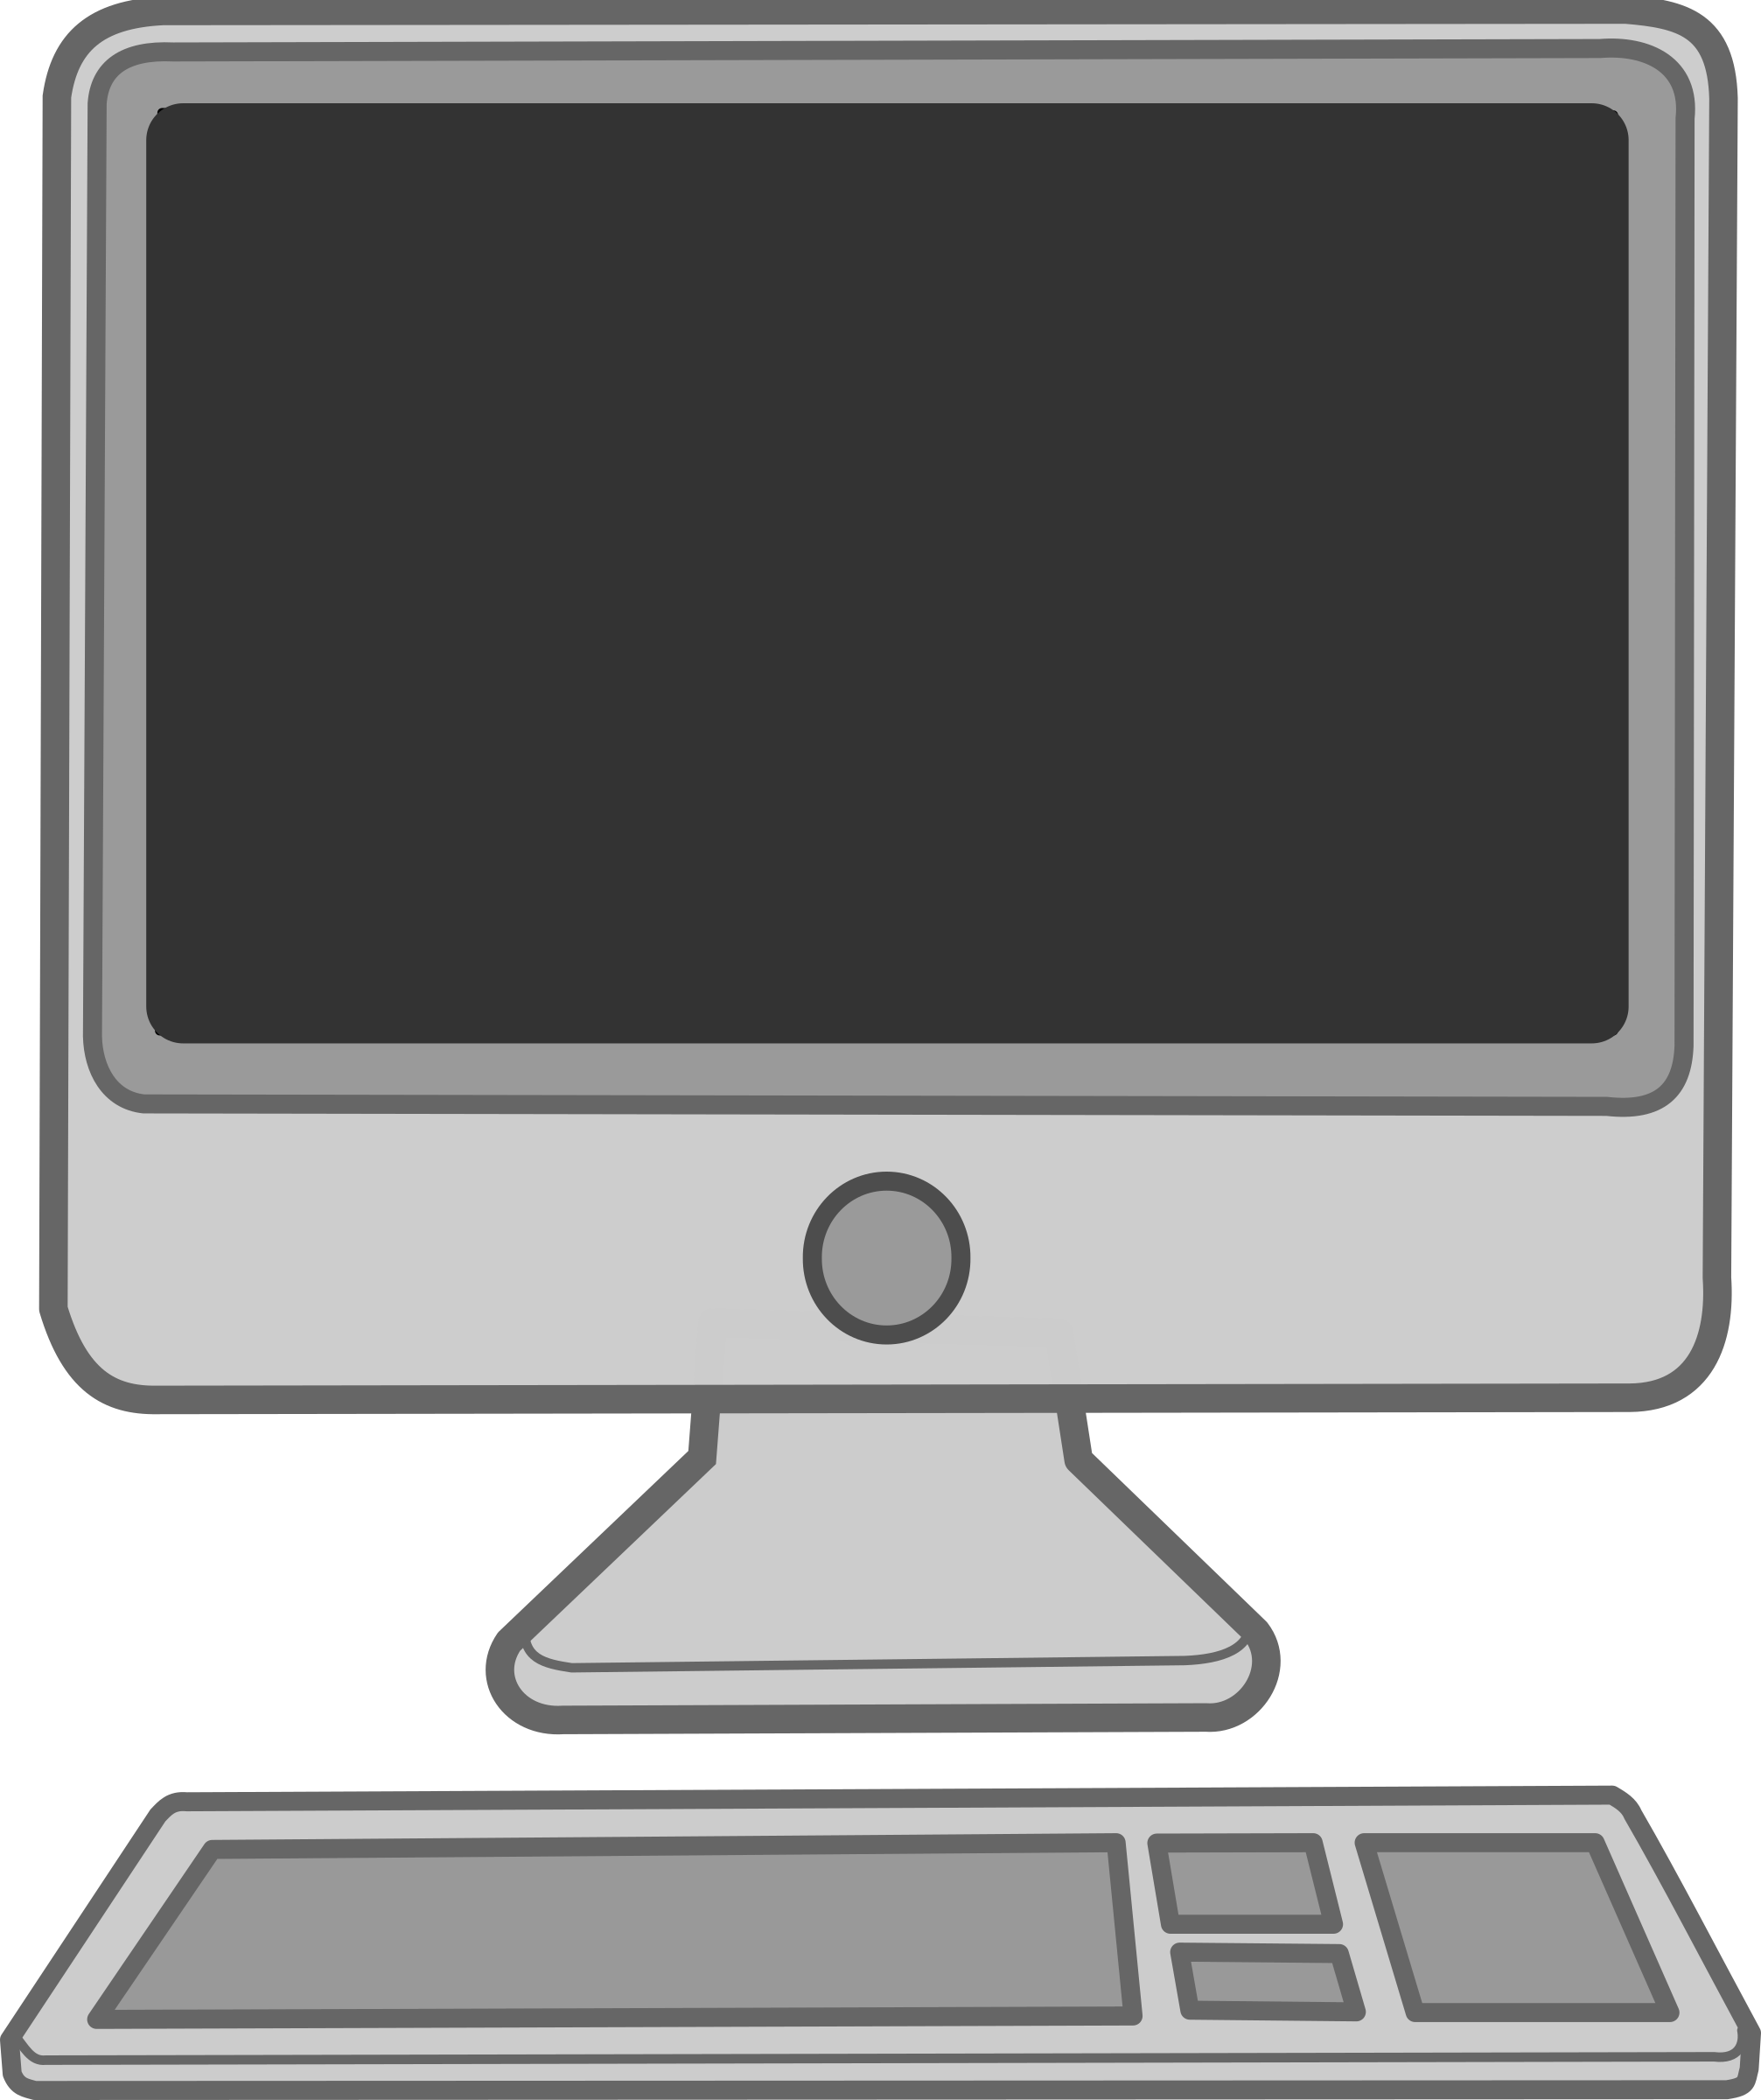 Free clipart for apple computers